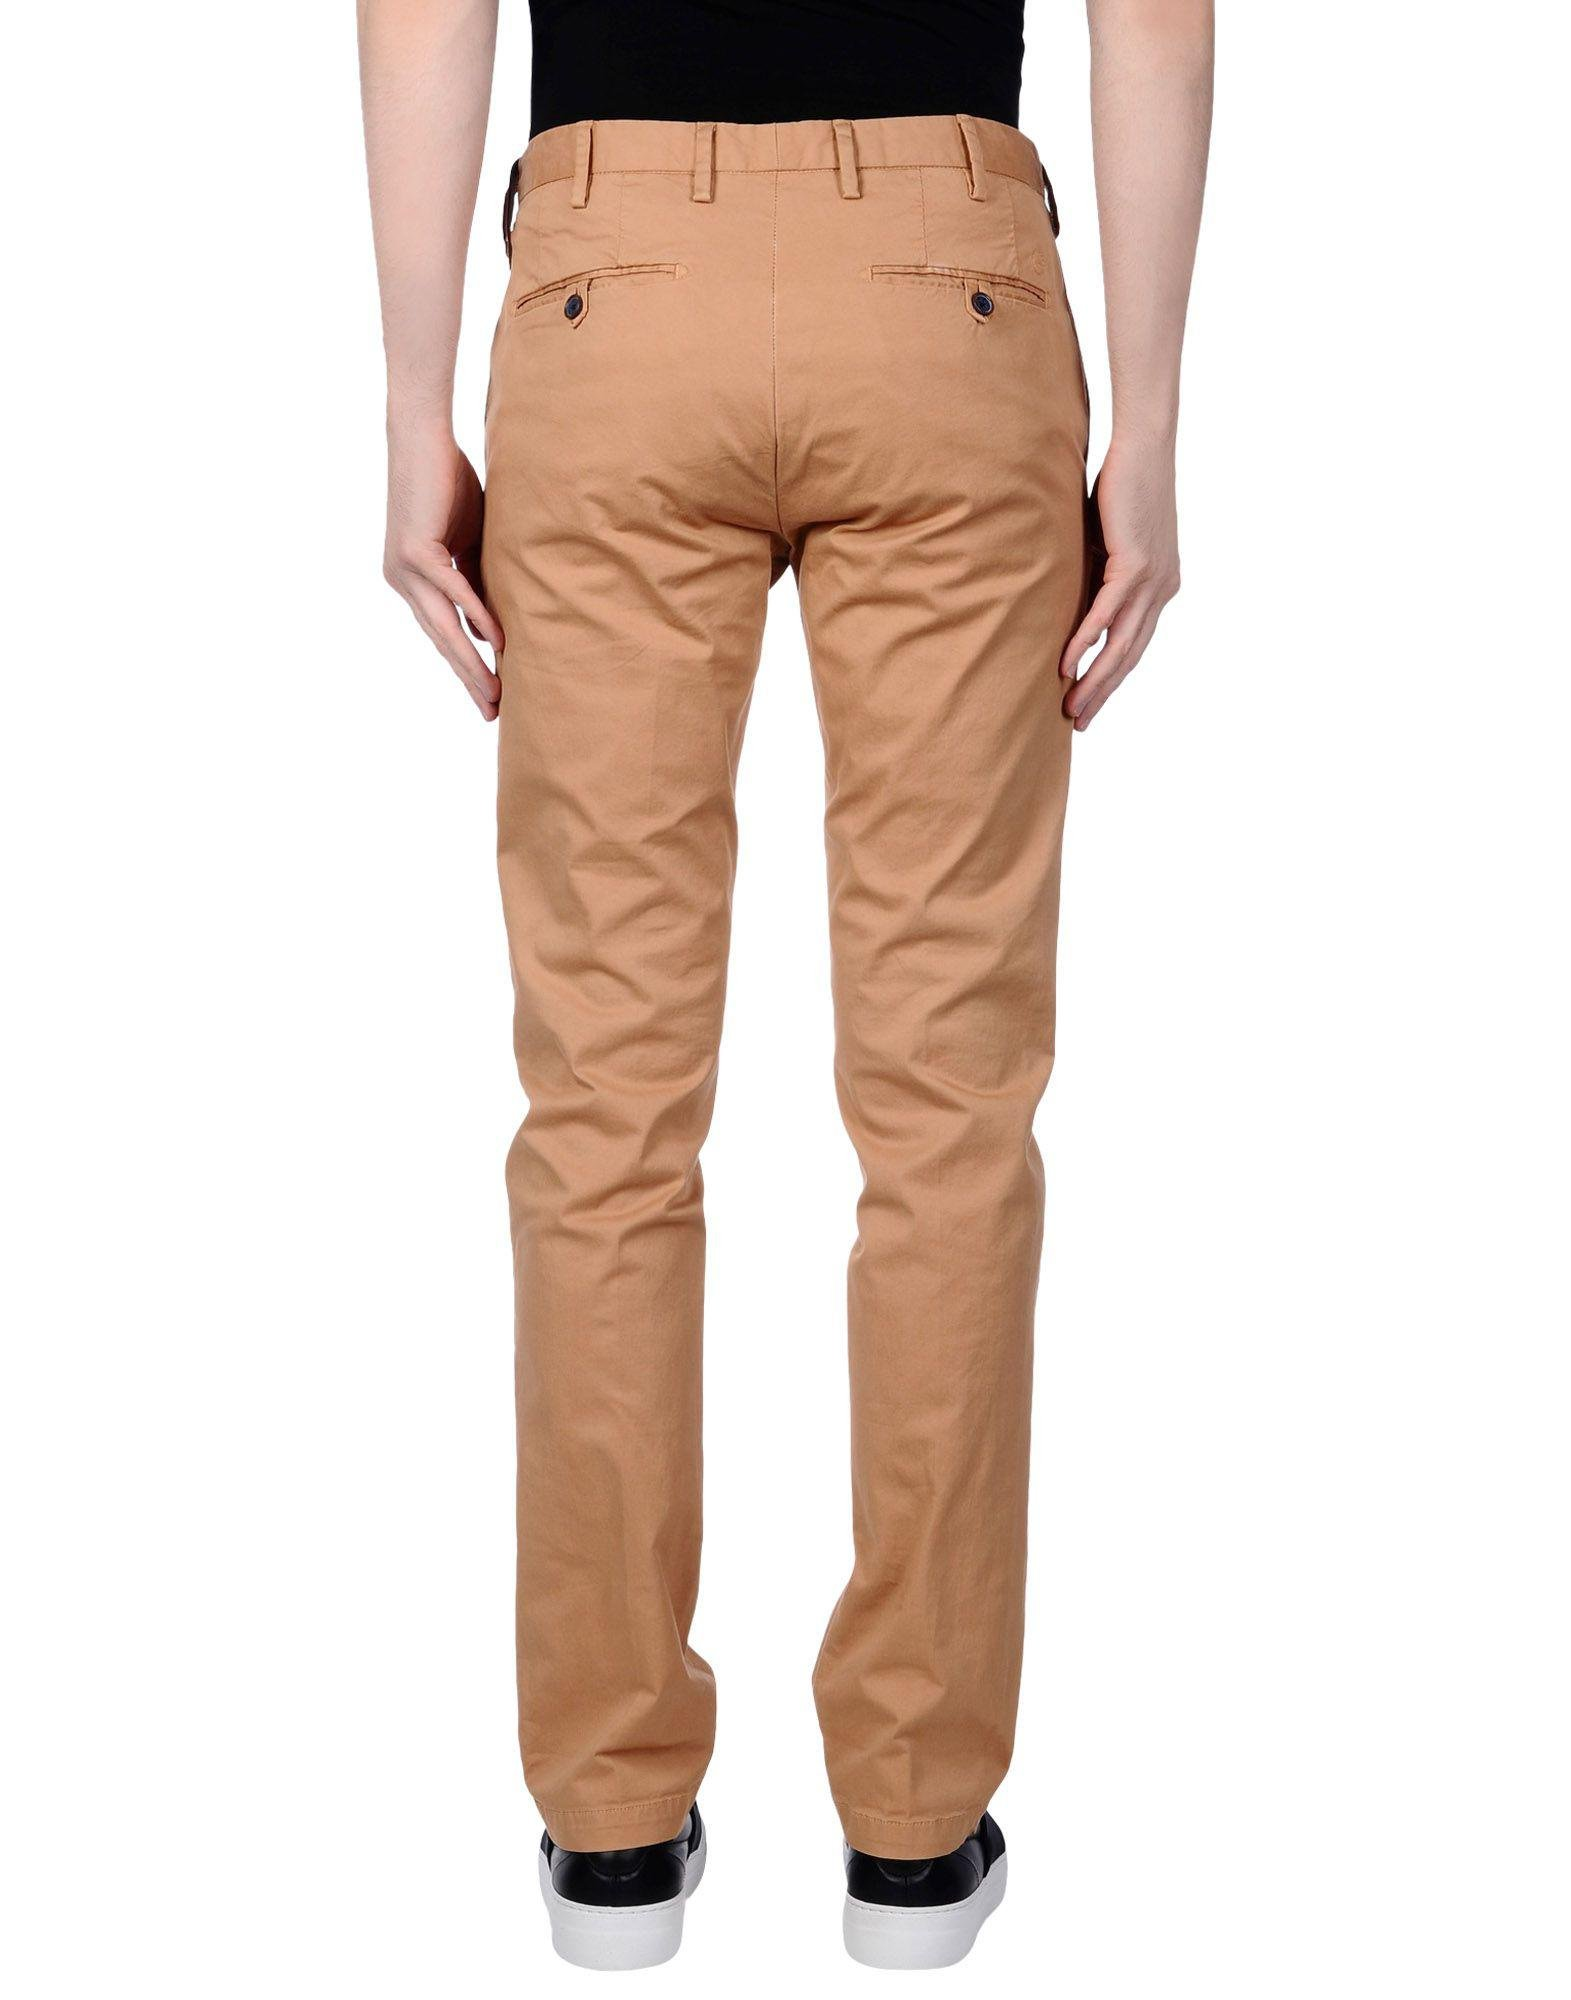 AT.P.CO Cotton Casual Trouser in Camel (Natural) for Men